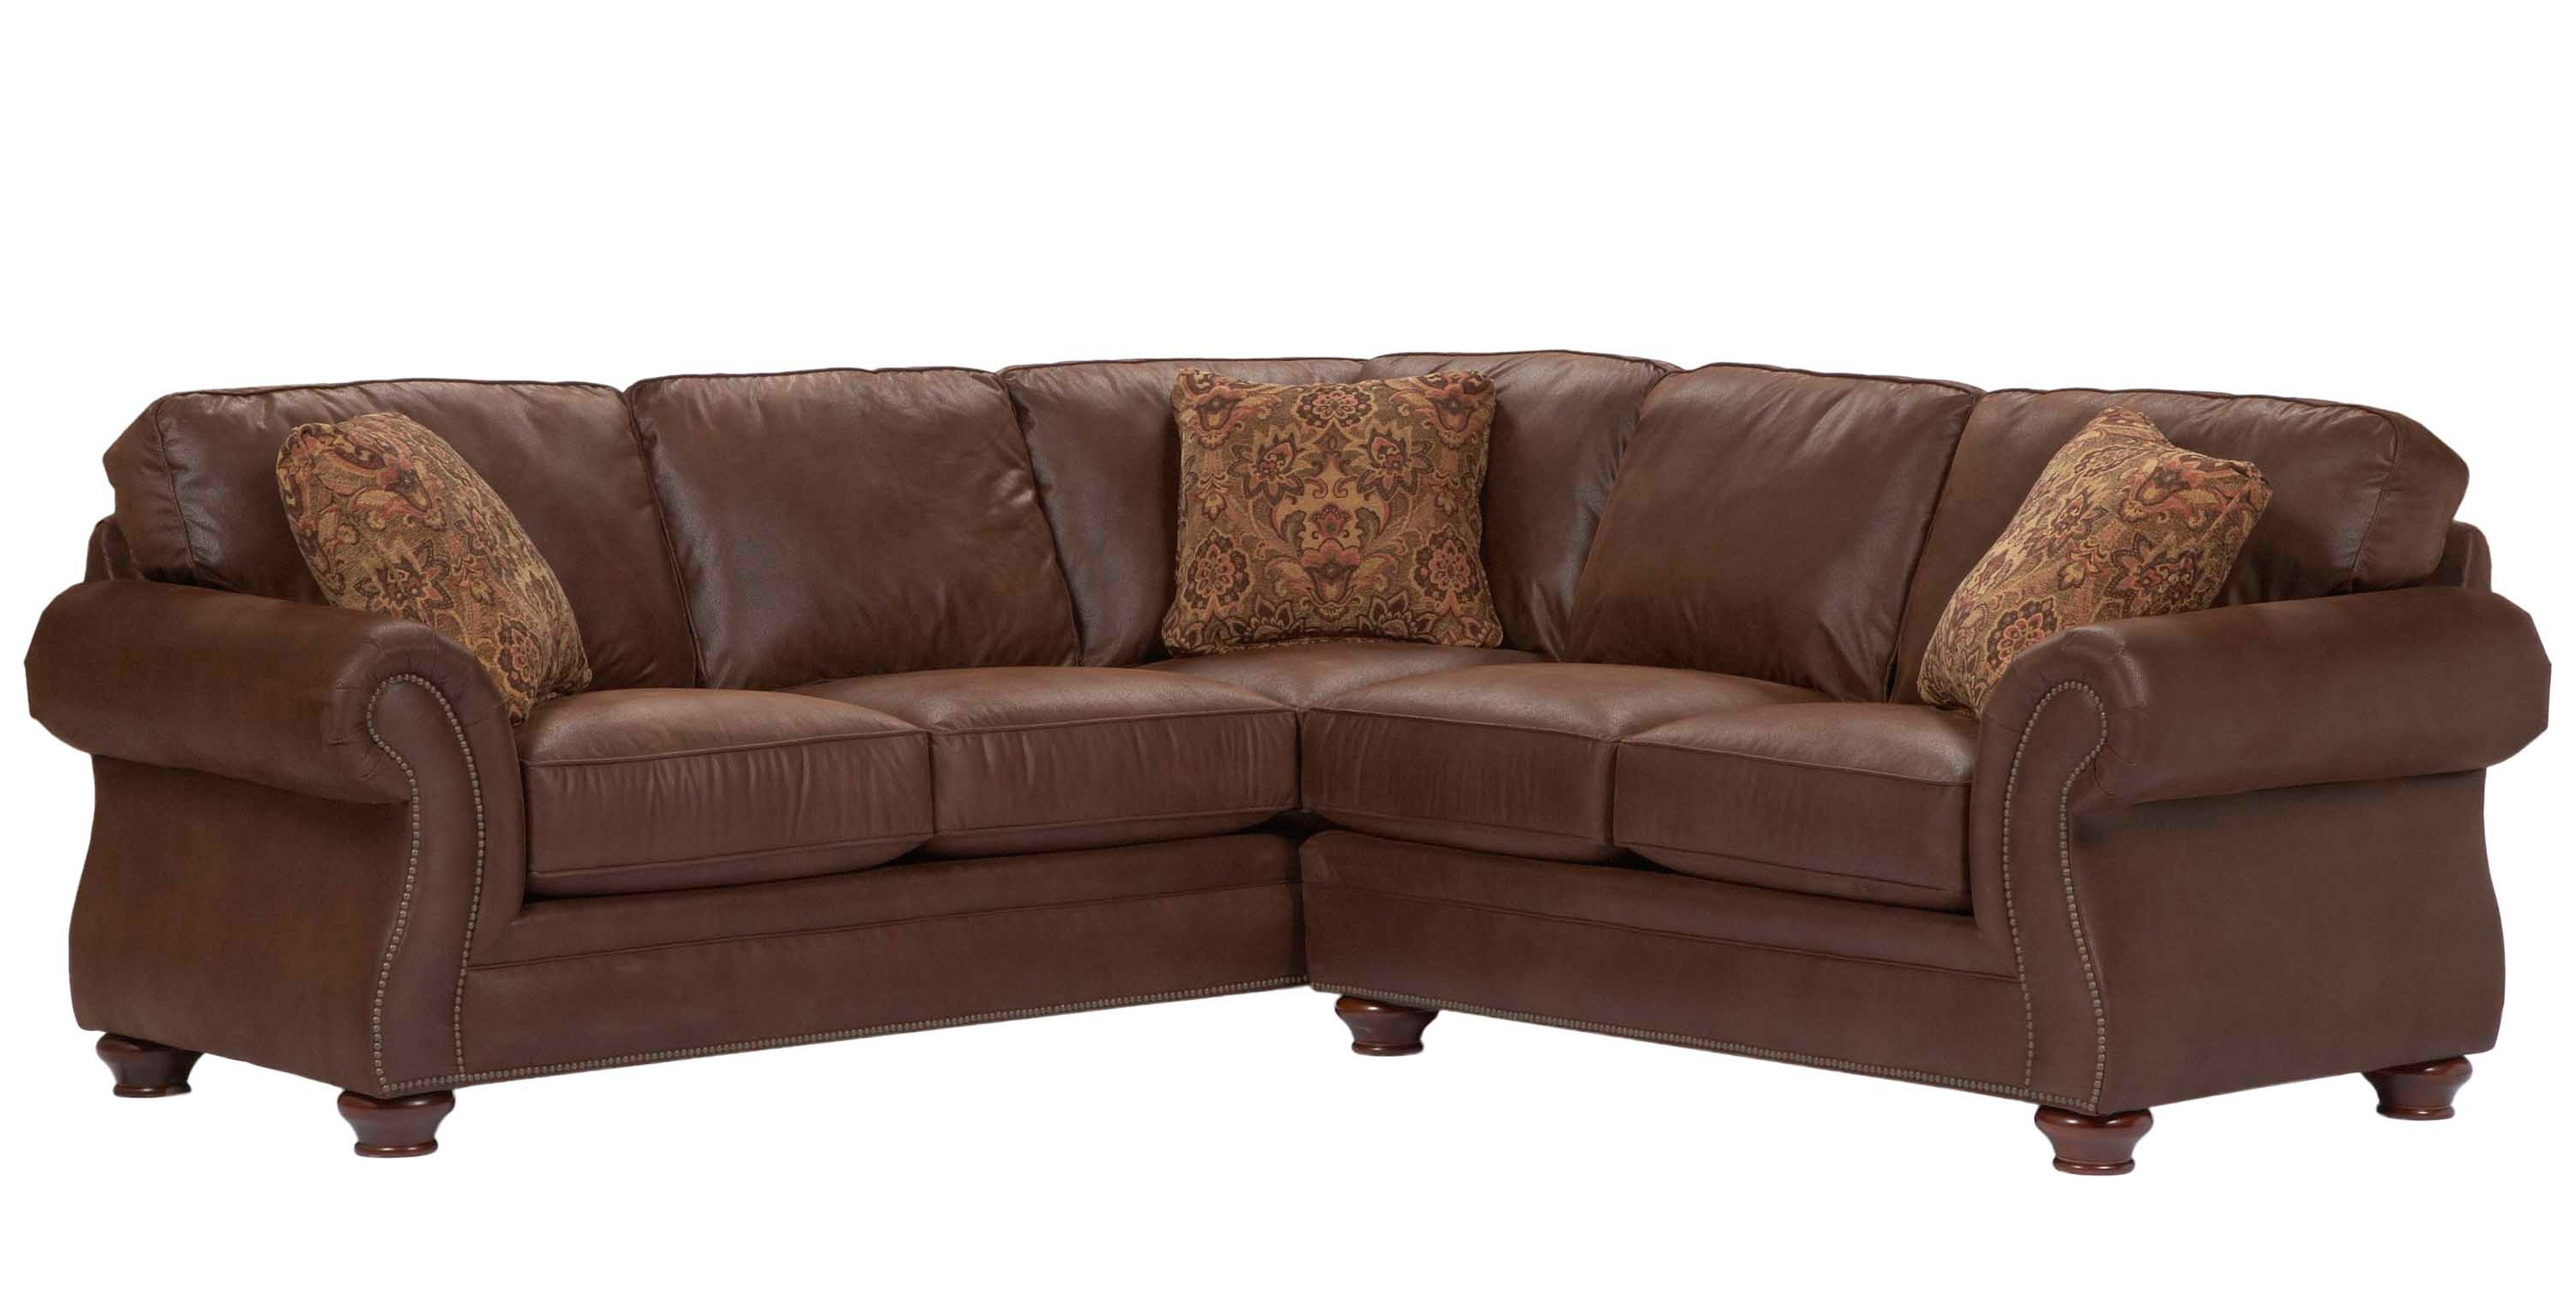 Broyhill Laramie Sectional 5080 1Q/5080 4Q For Sectional Sofas At Broyhill (View 6 of 15)